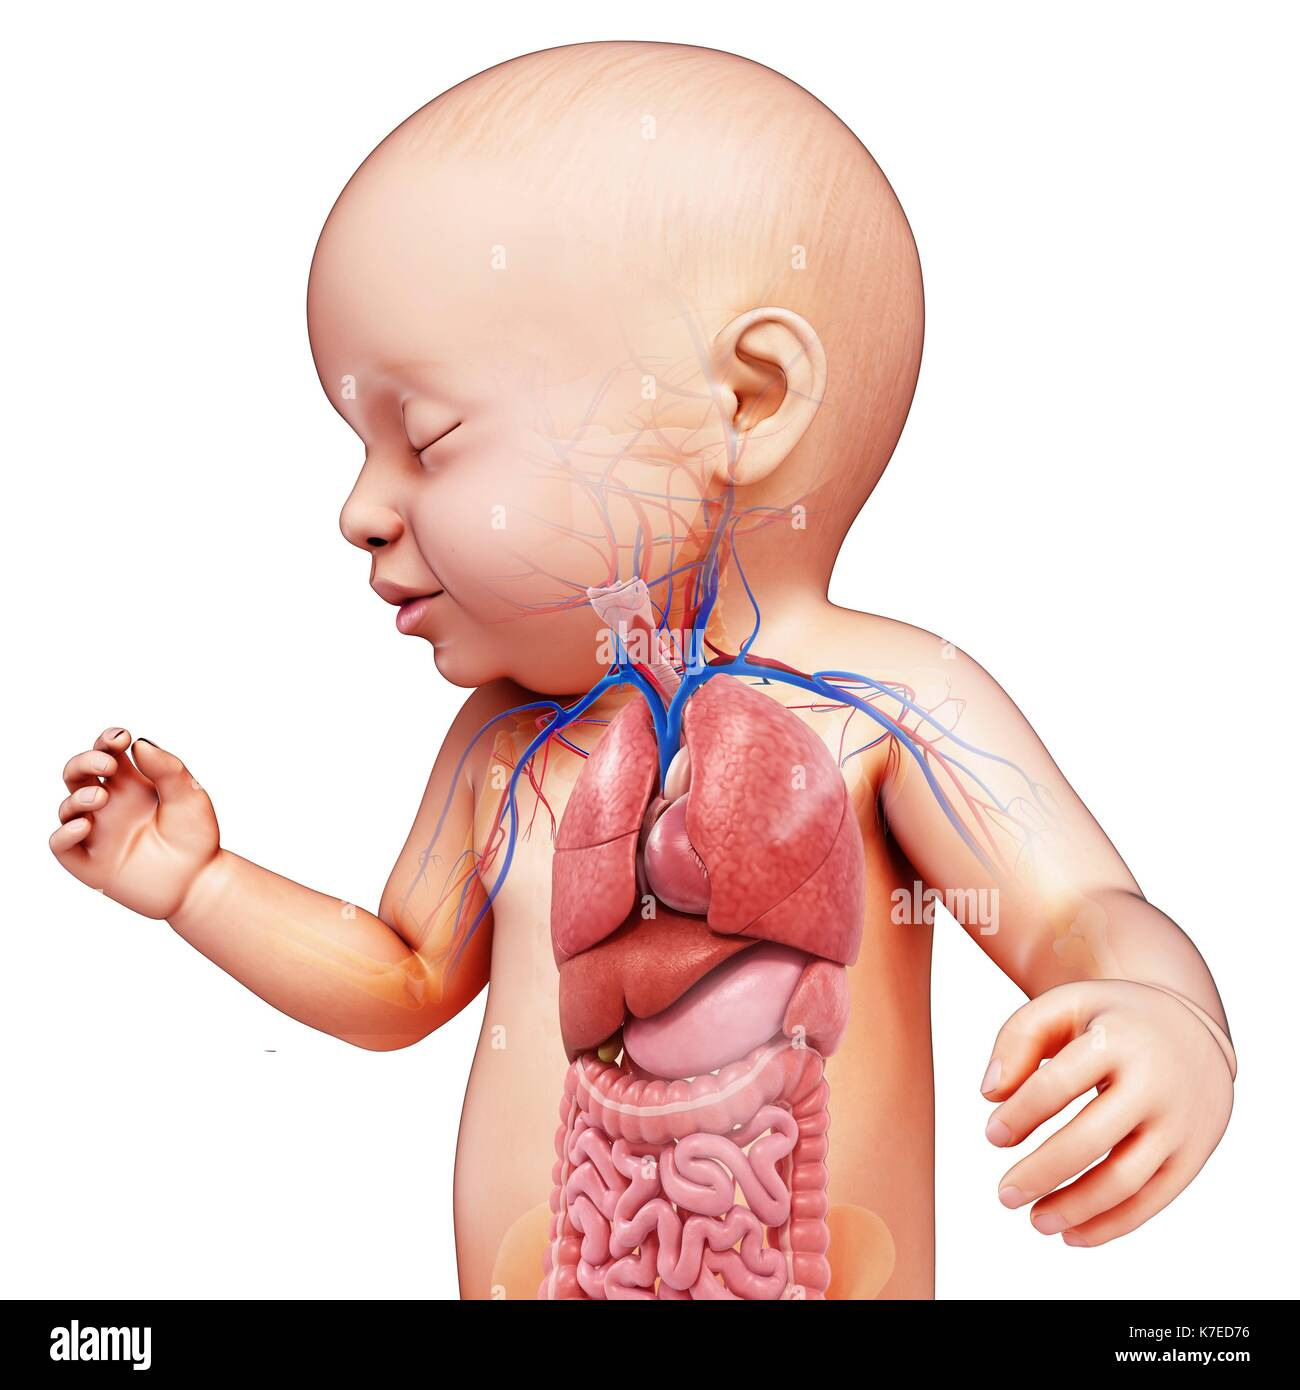 Illustration Of A Babys Body Organs Stock Photo 159513626 Alamy